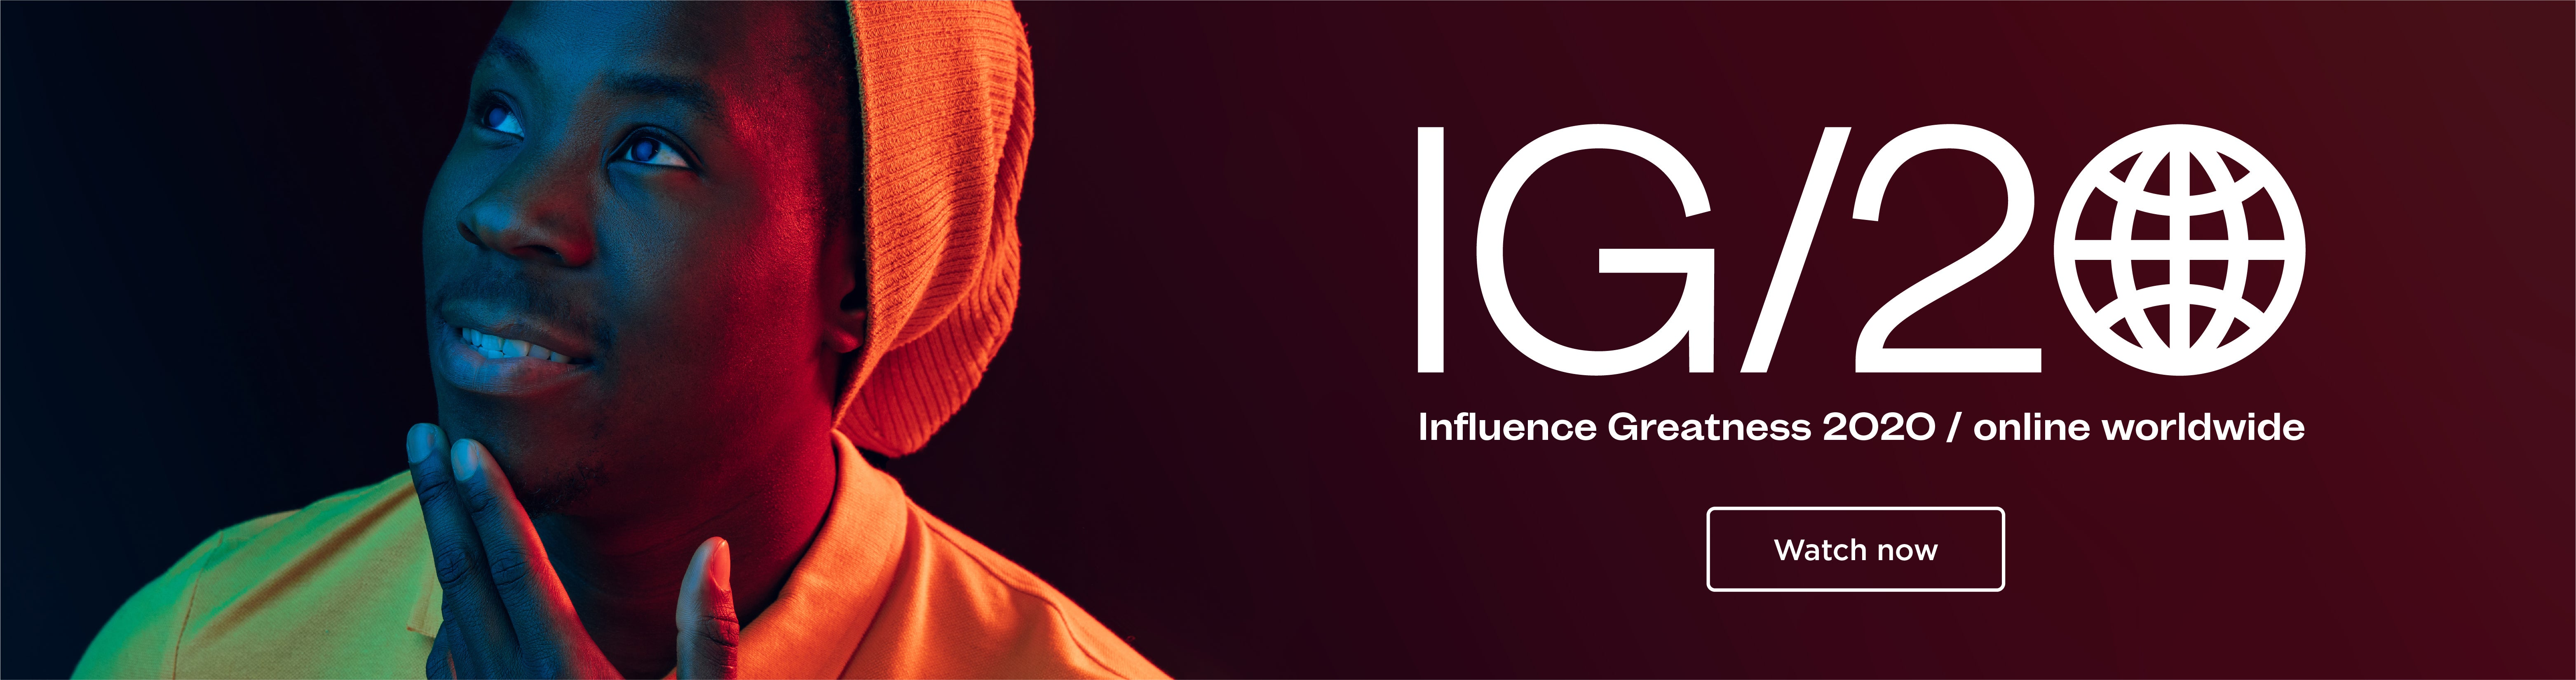 Influence Greatness 2020 online worldwide. Watch now until the end of 2020!